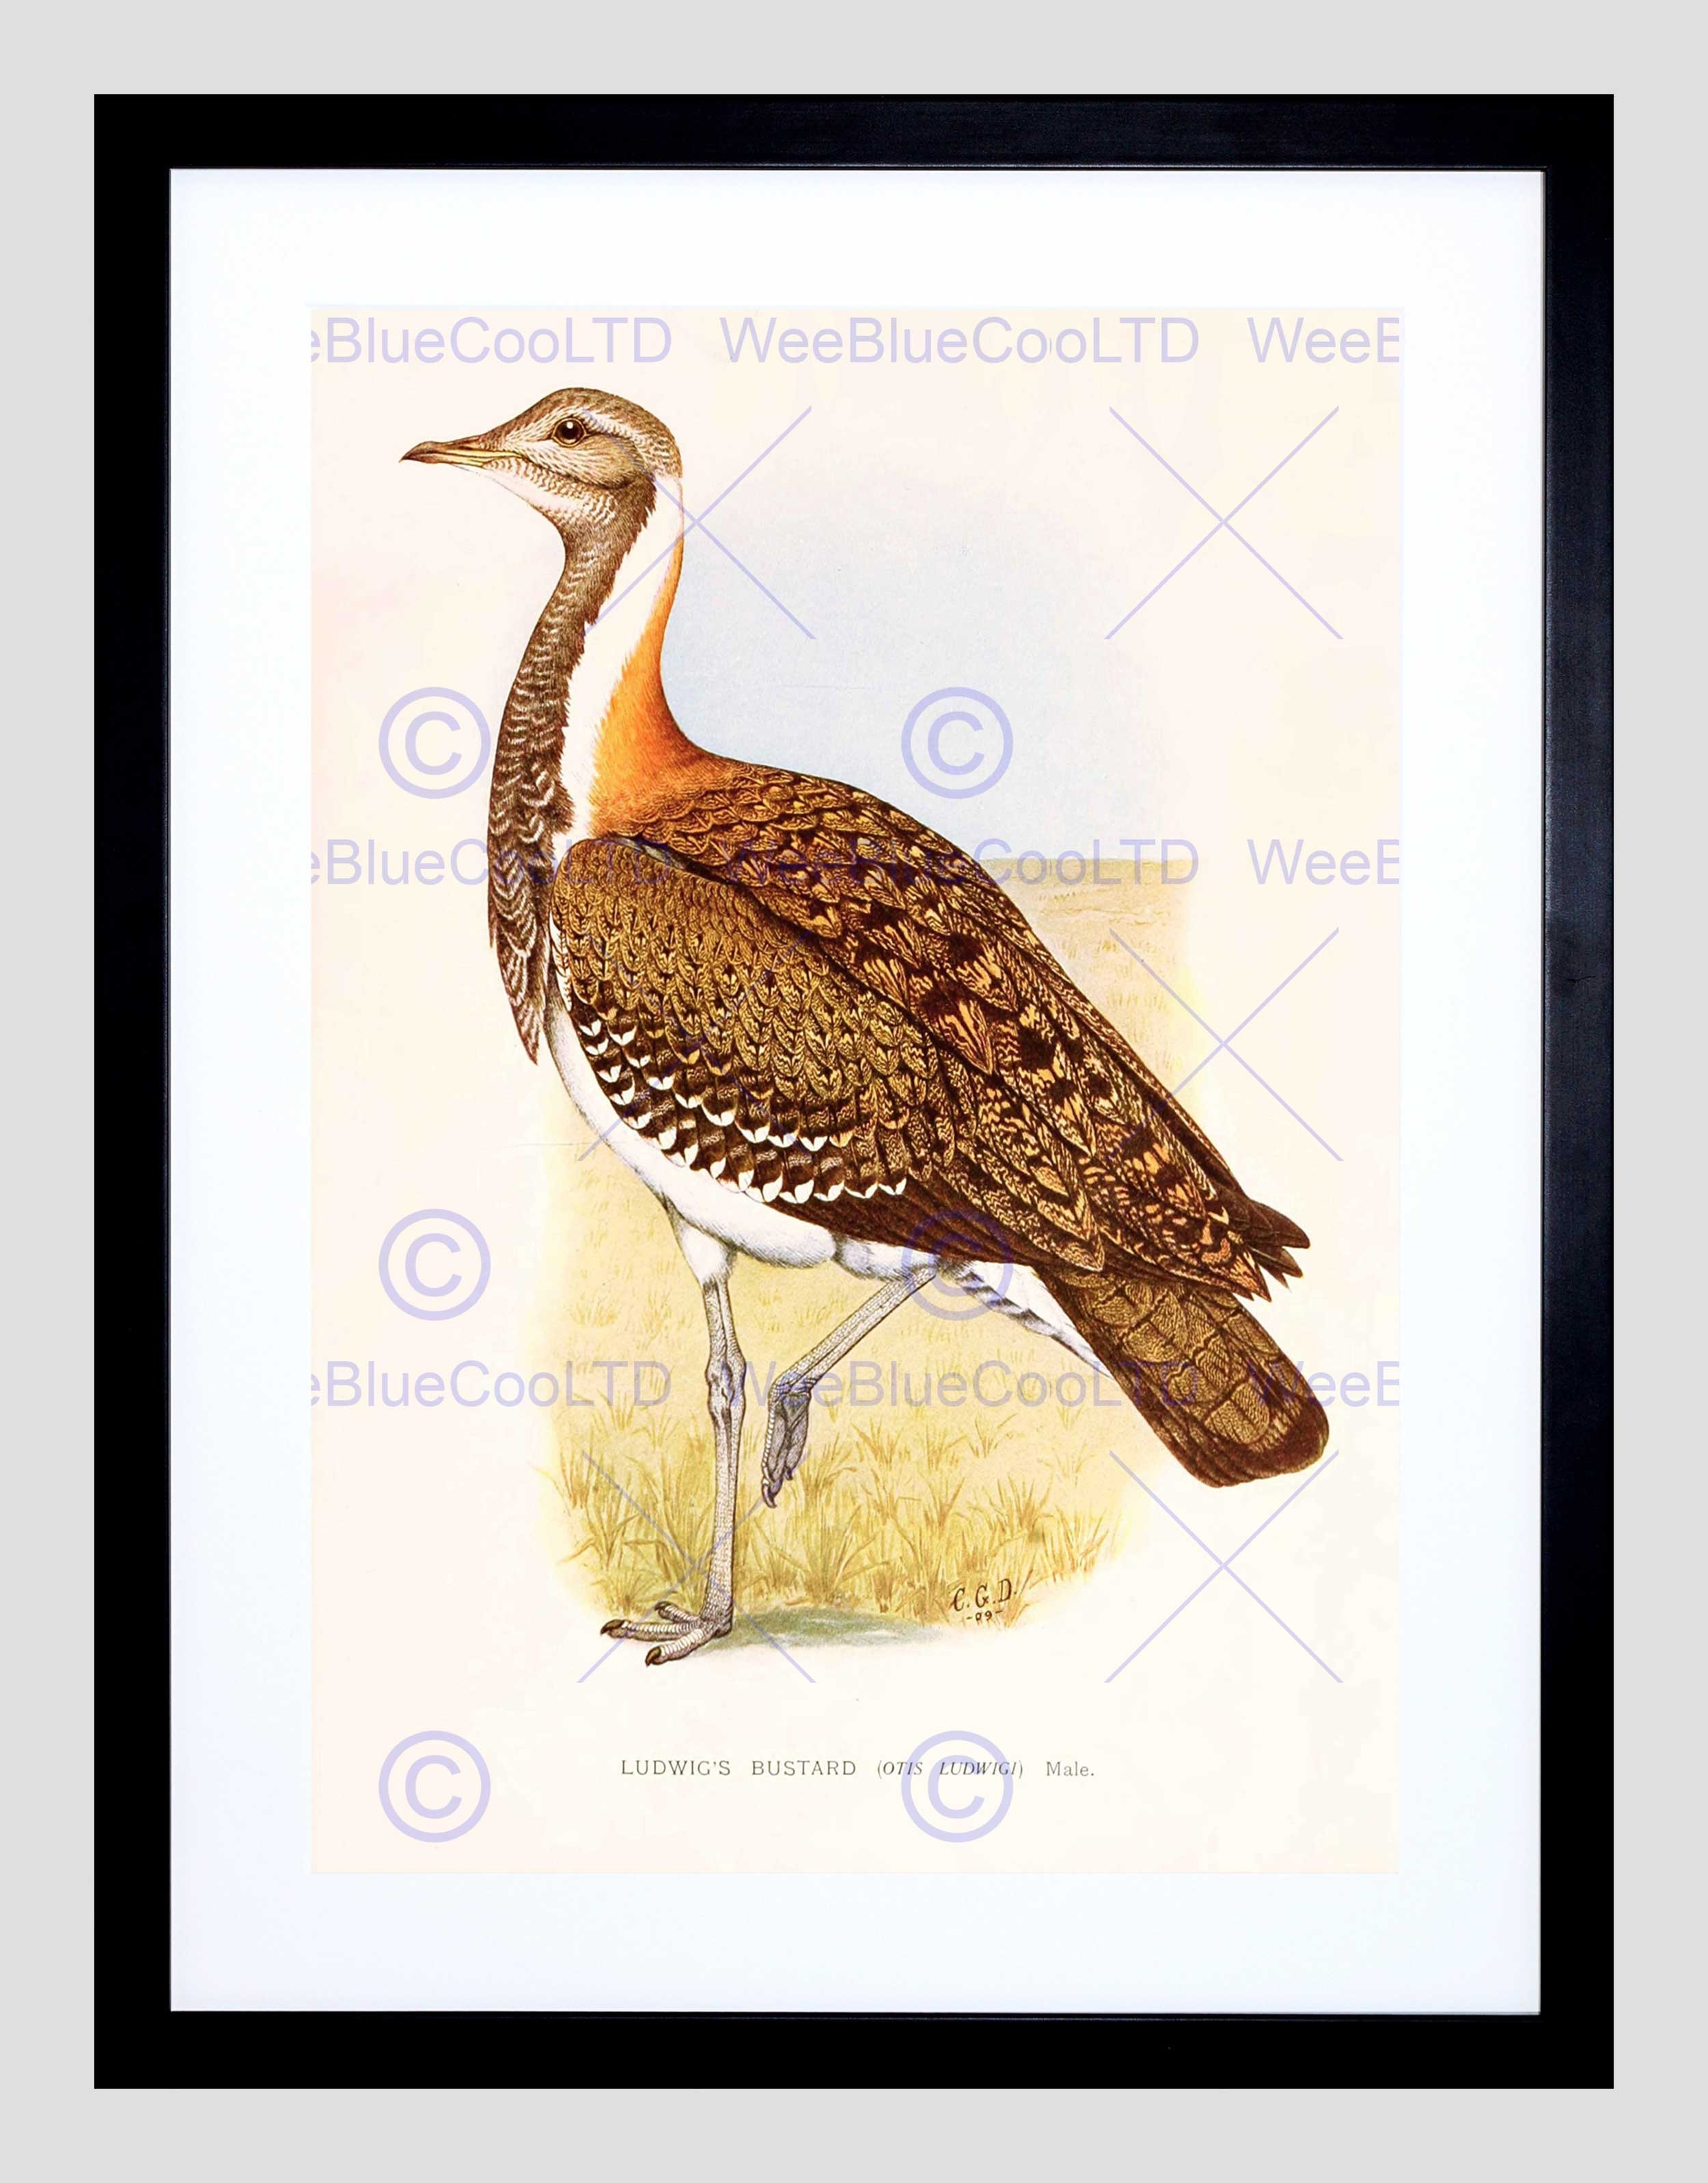 Painting Birds South Africa Horsbrugh Ludwigs Bustard Framed Art Throughout 2018 South Africa Framed Art Prints (View 8 of 15)